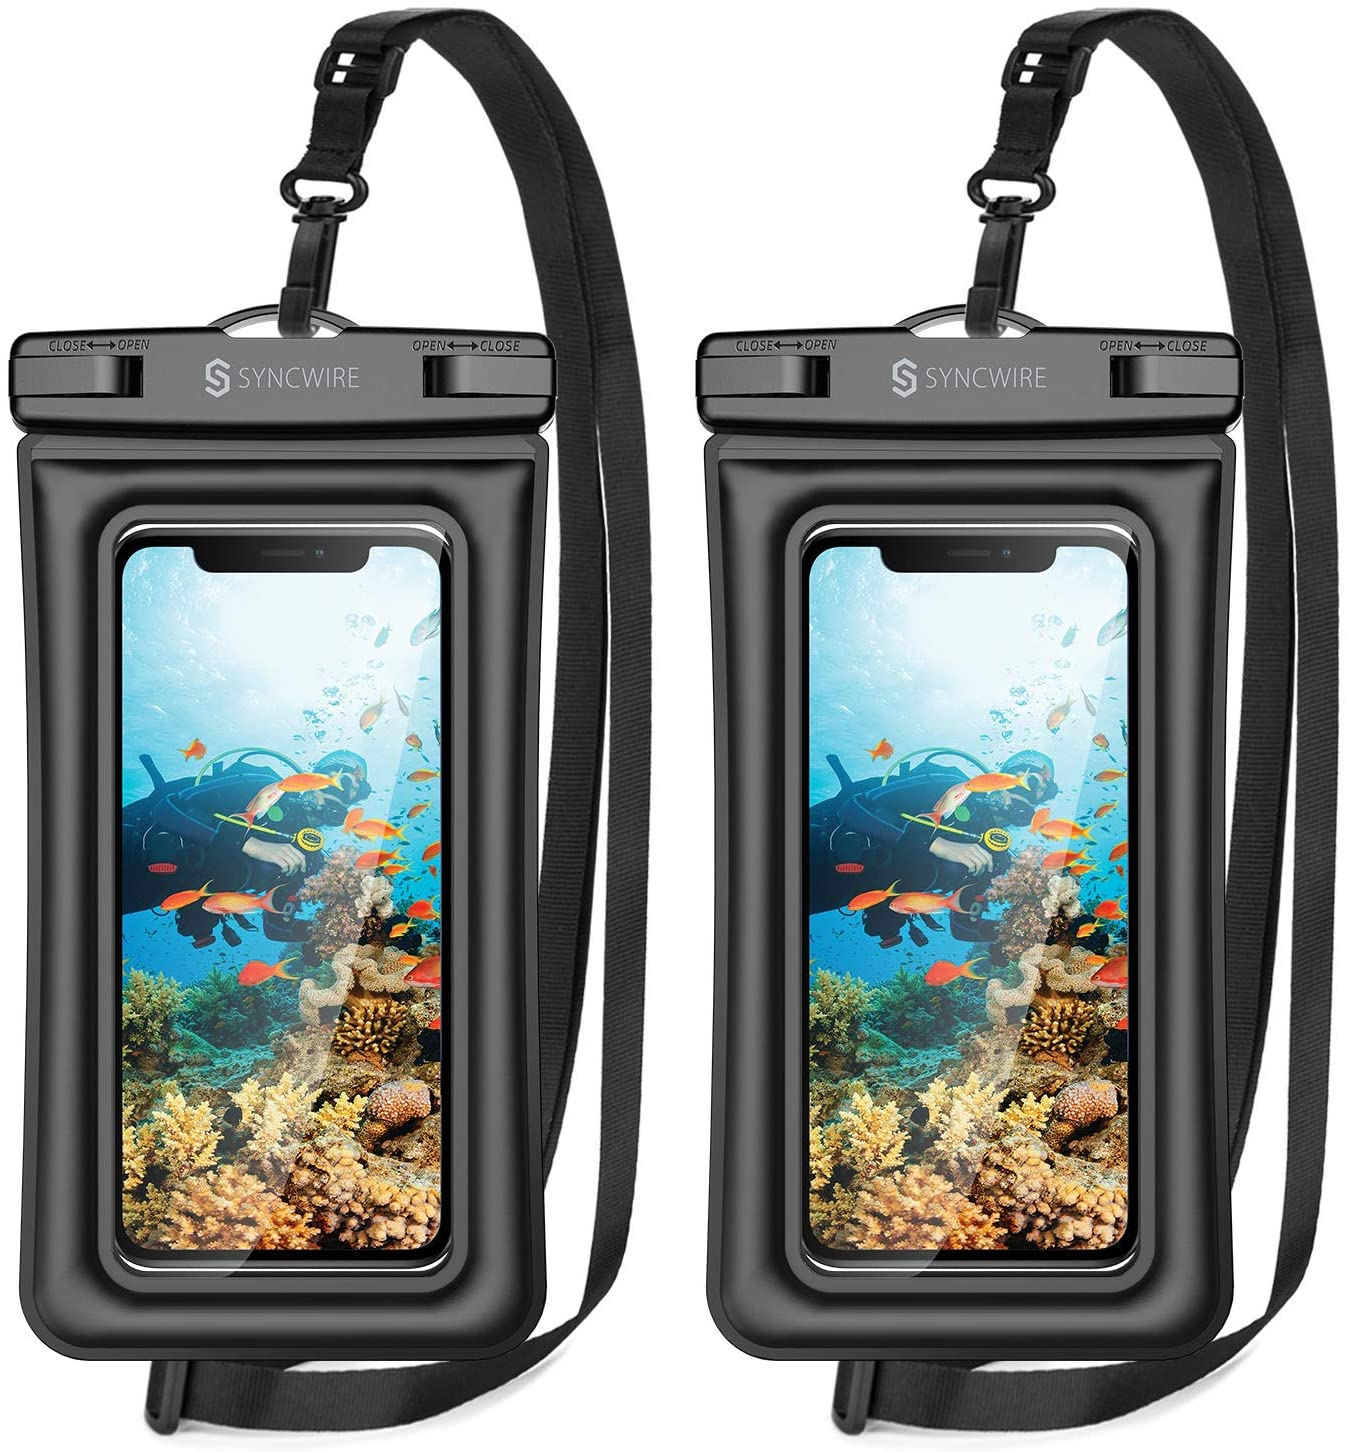 Syncwire Waterproof Phone Pouch, 2 Pack IPX8 Waterproof Case Underwater Dry Bag Compatible with iPhone 12 SE2 11 Pro XS Max XR X 8 7 6s Plus Galaxy S10 S9 Note 10 Google Pixel Up to 7